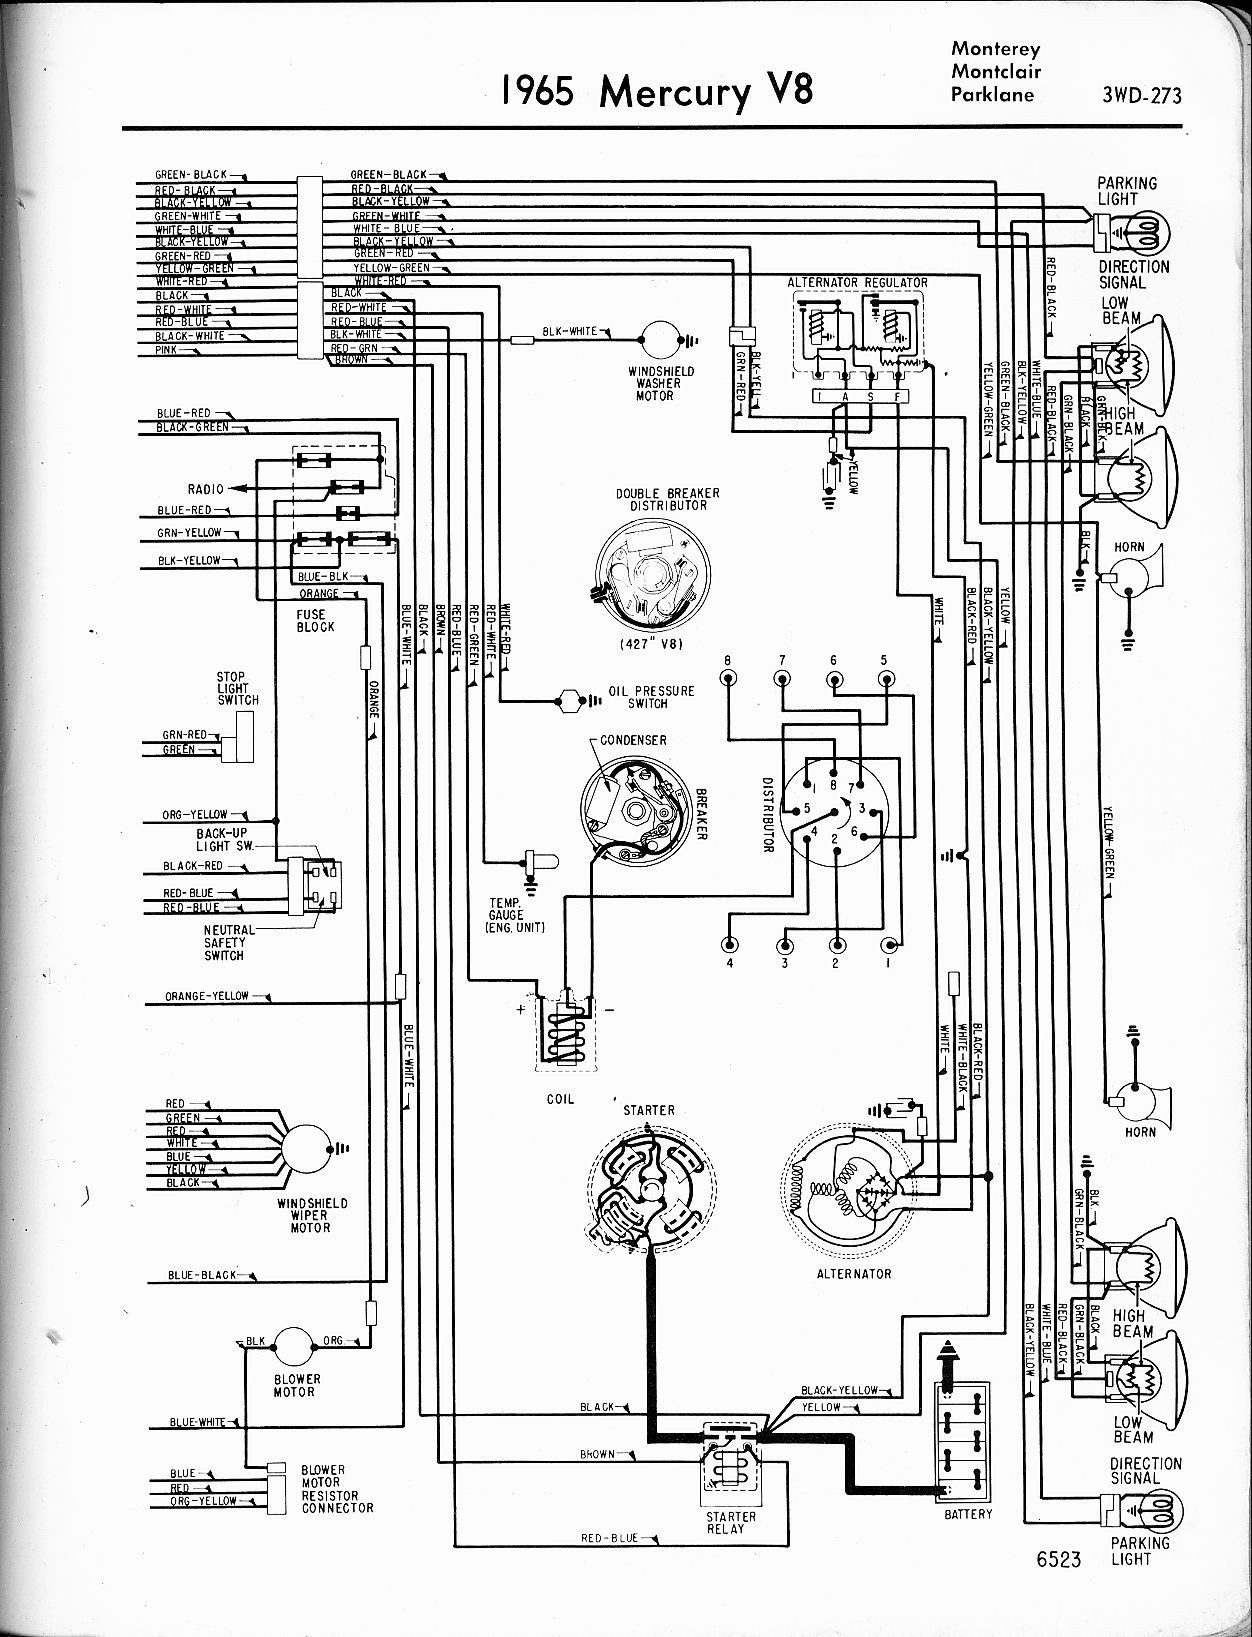 68 cougar wiring schematic wiring diagram library u2022 rh wiringhero today 1969 Mustang Wiring Diagram 1967 Nova Wiring Diagram